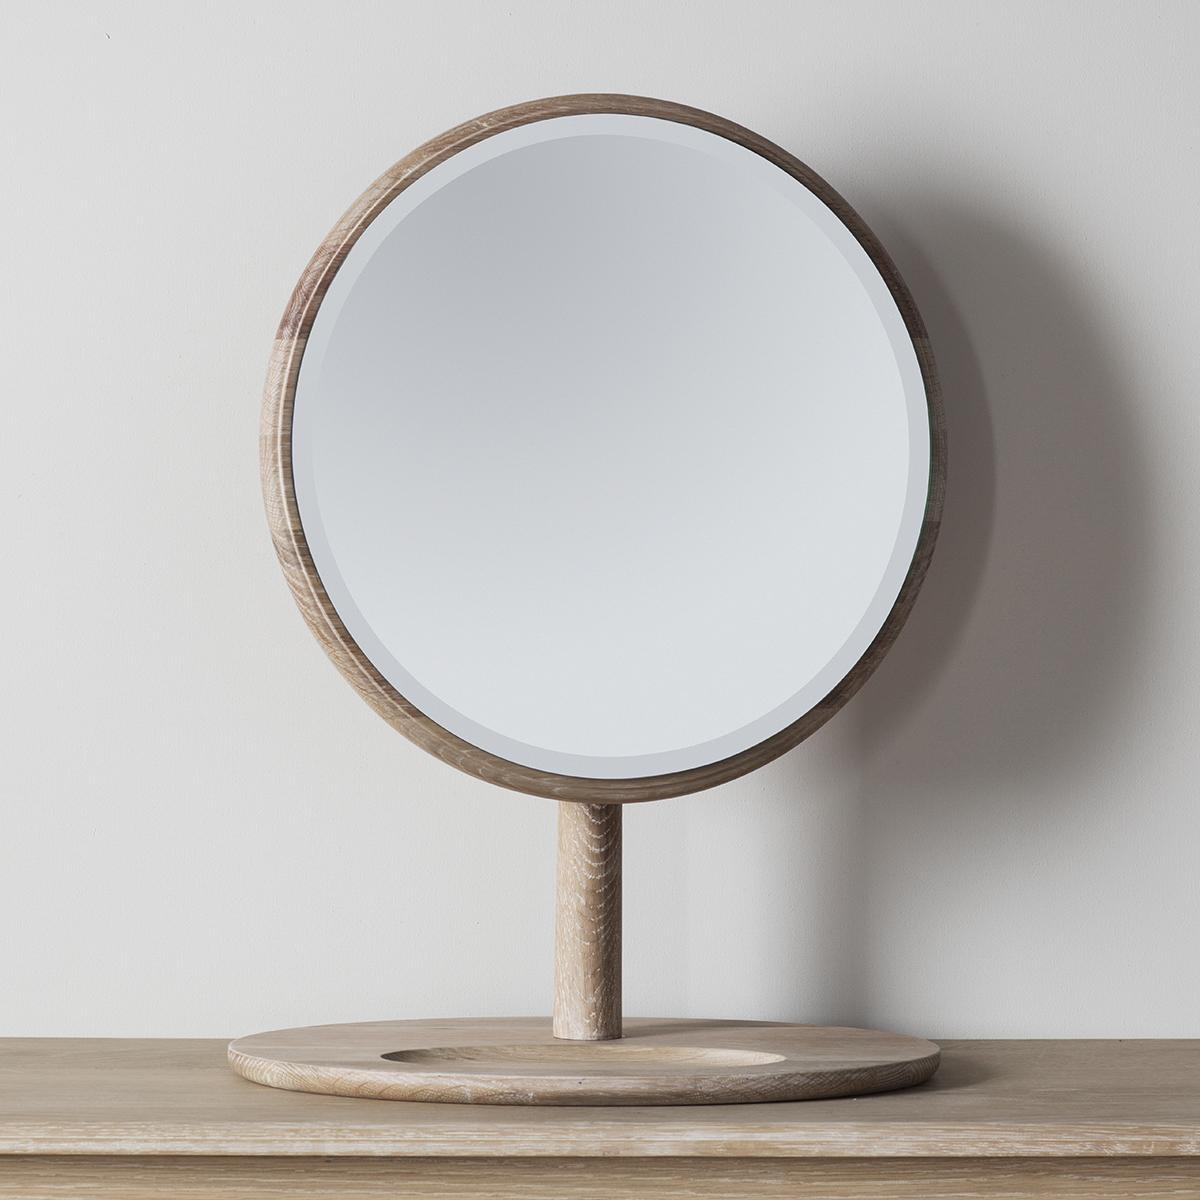 Wooden Framed Round Dressing Table Mirror  (Image 20 of 20)